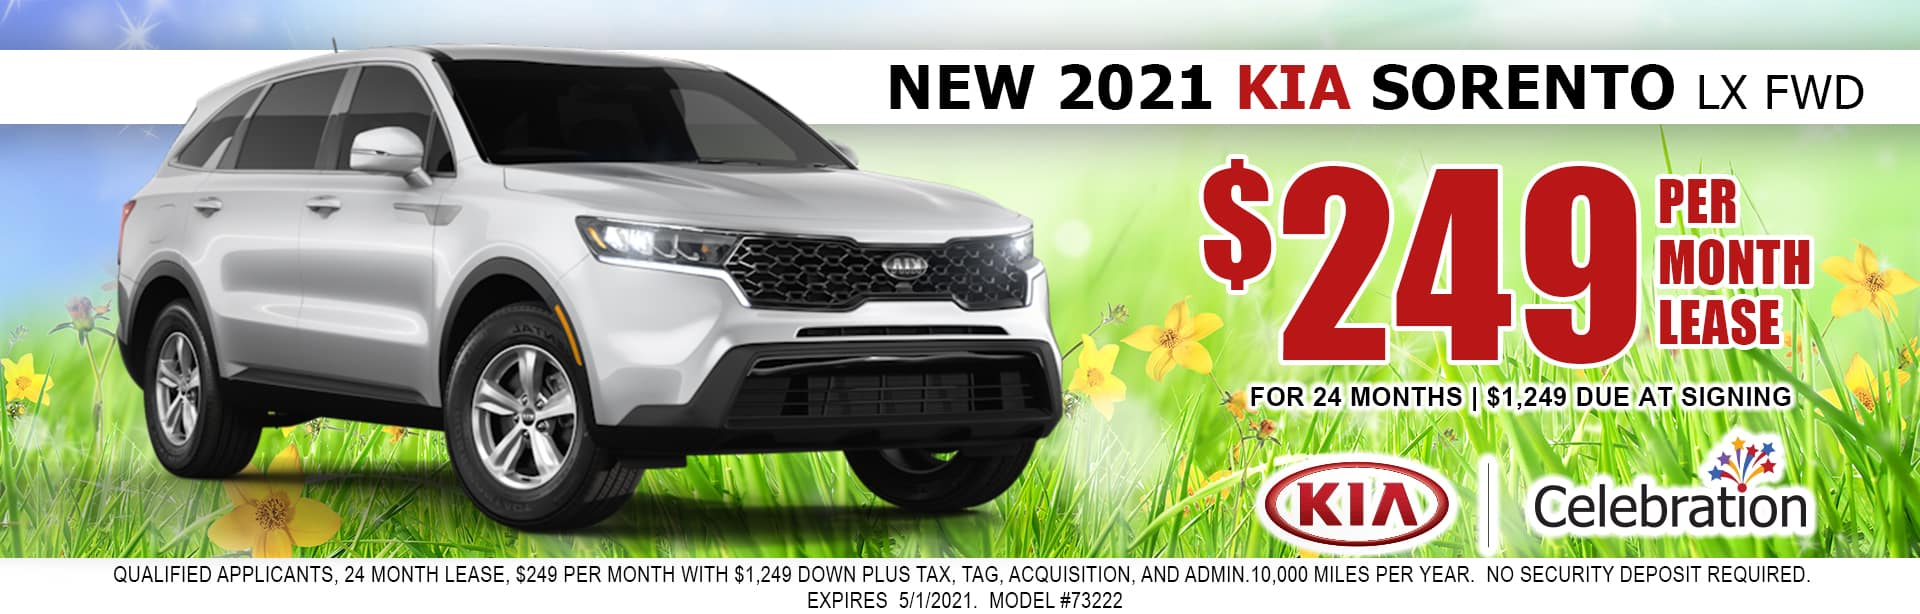 2021 Kia Sorento lease for $249/mo